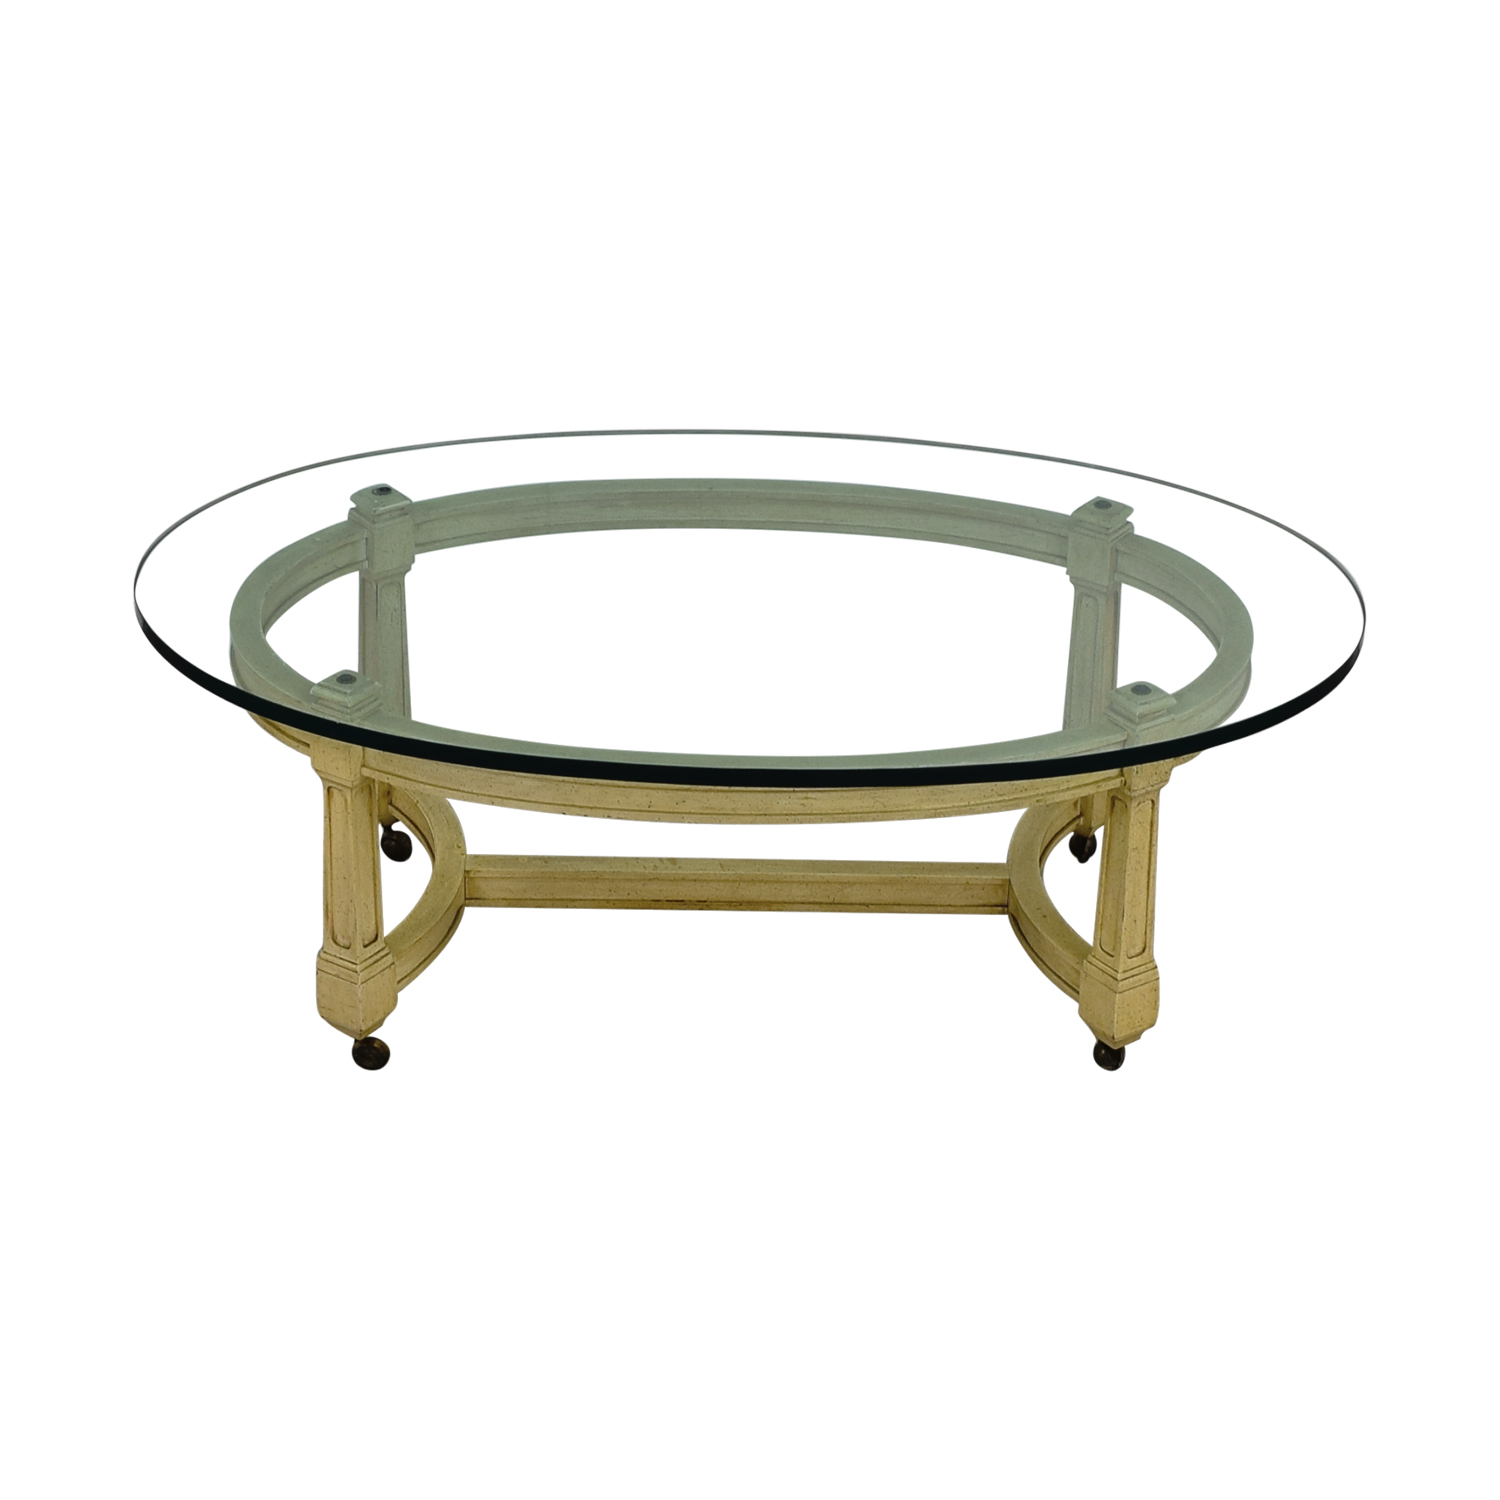 75 off off white and glass oval coffee table on castors tables Glass oval coffee tables